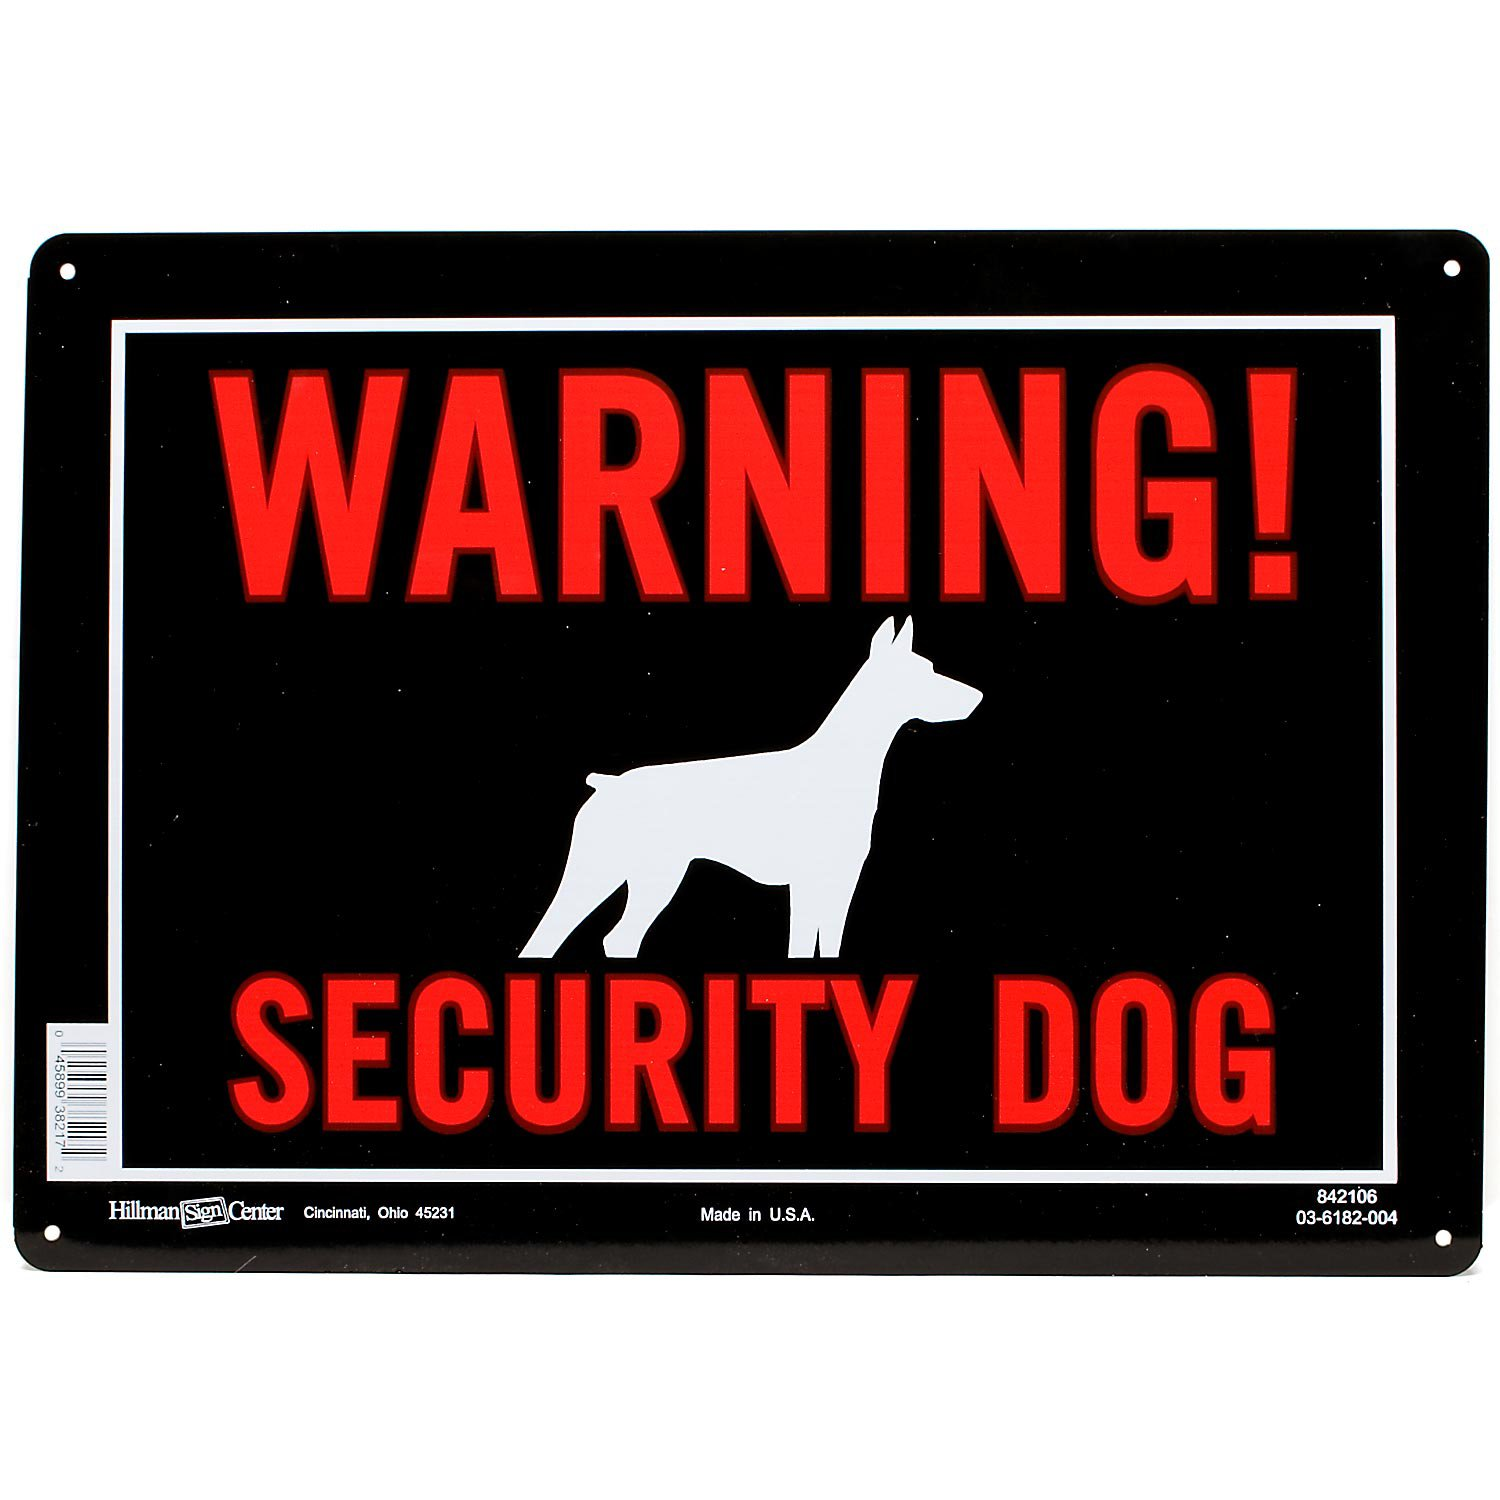 Hillman Sign Center- Warning! Security Dog